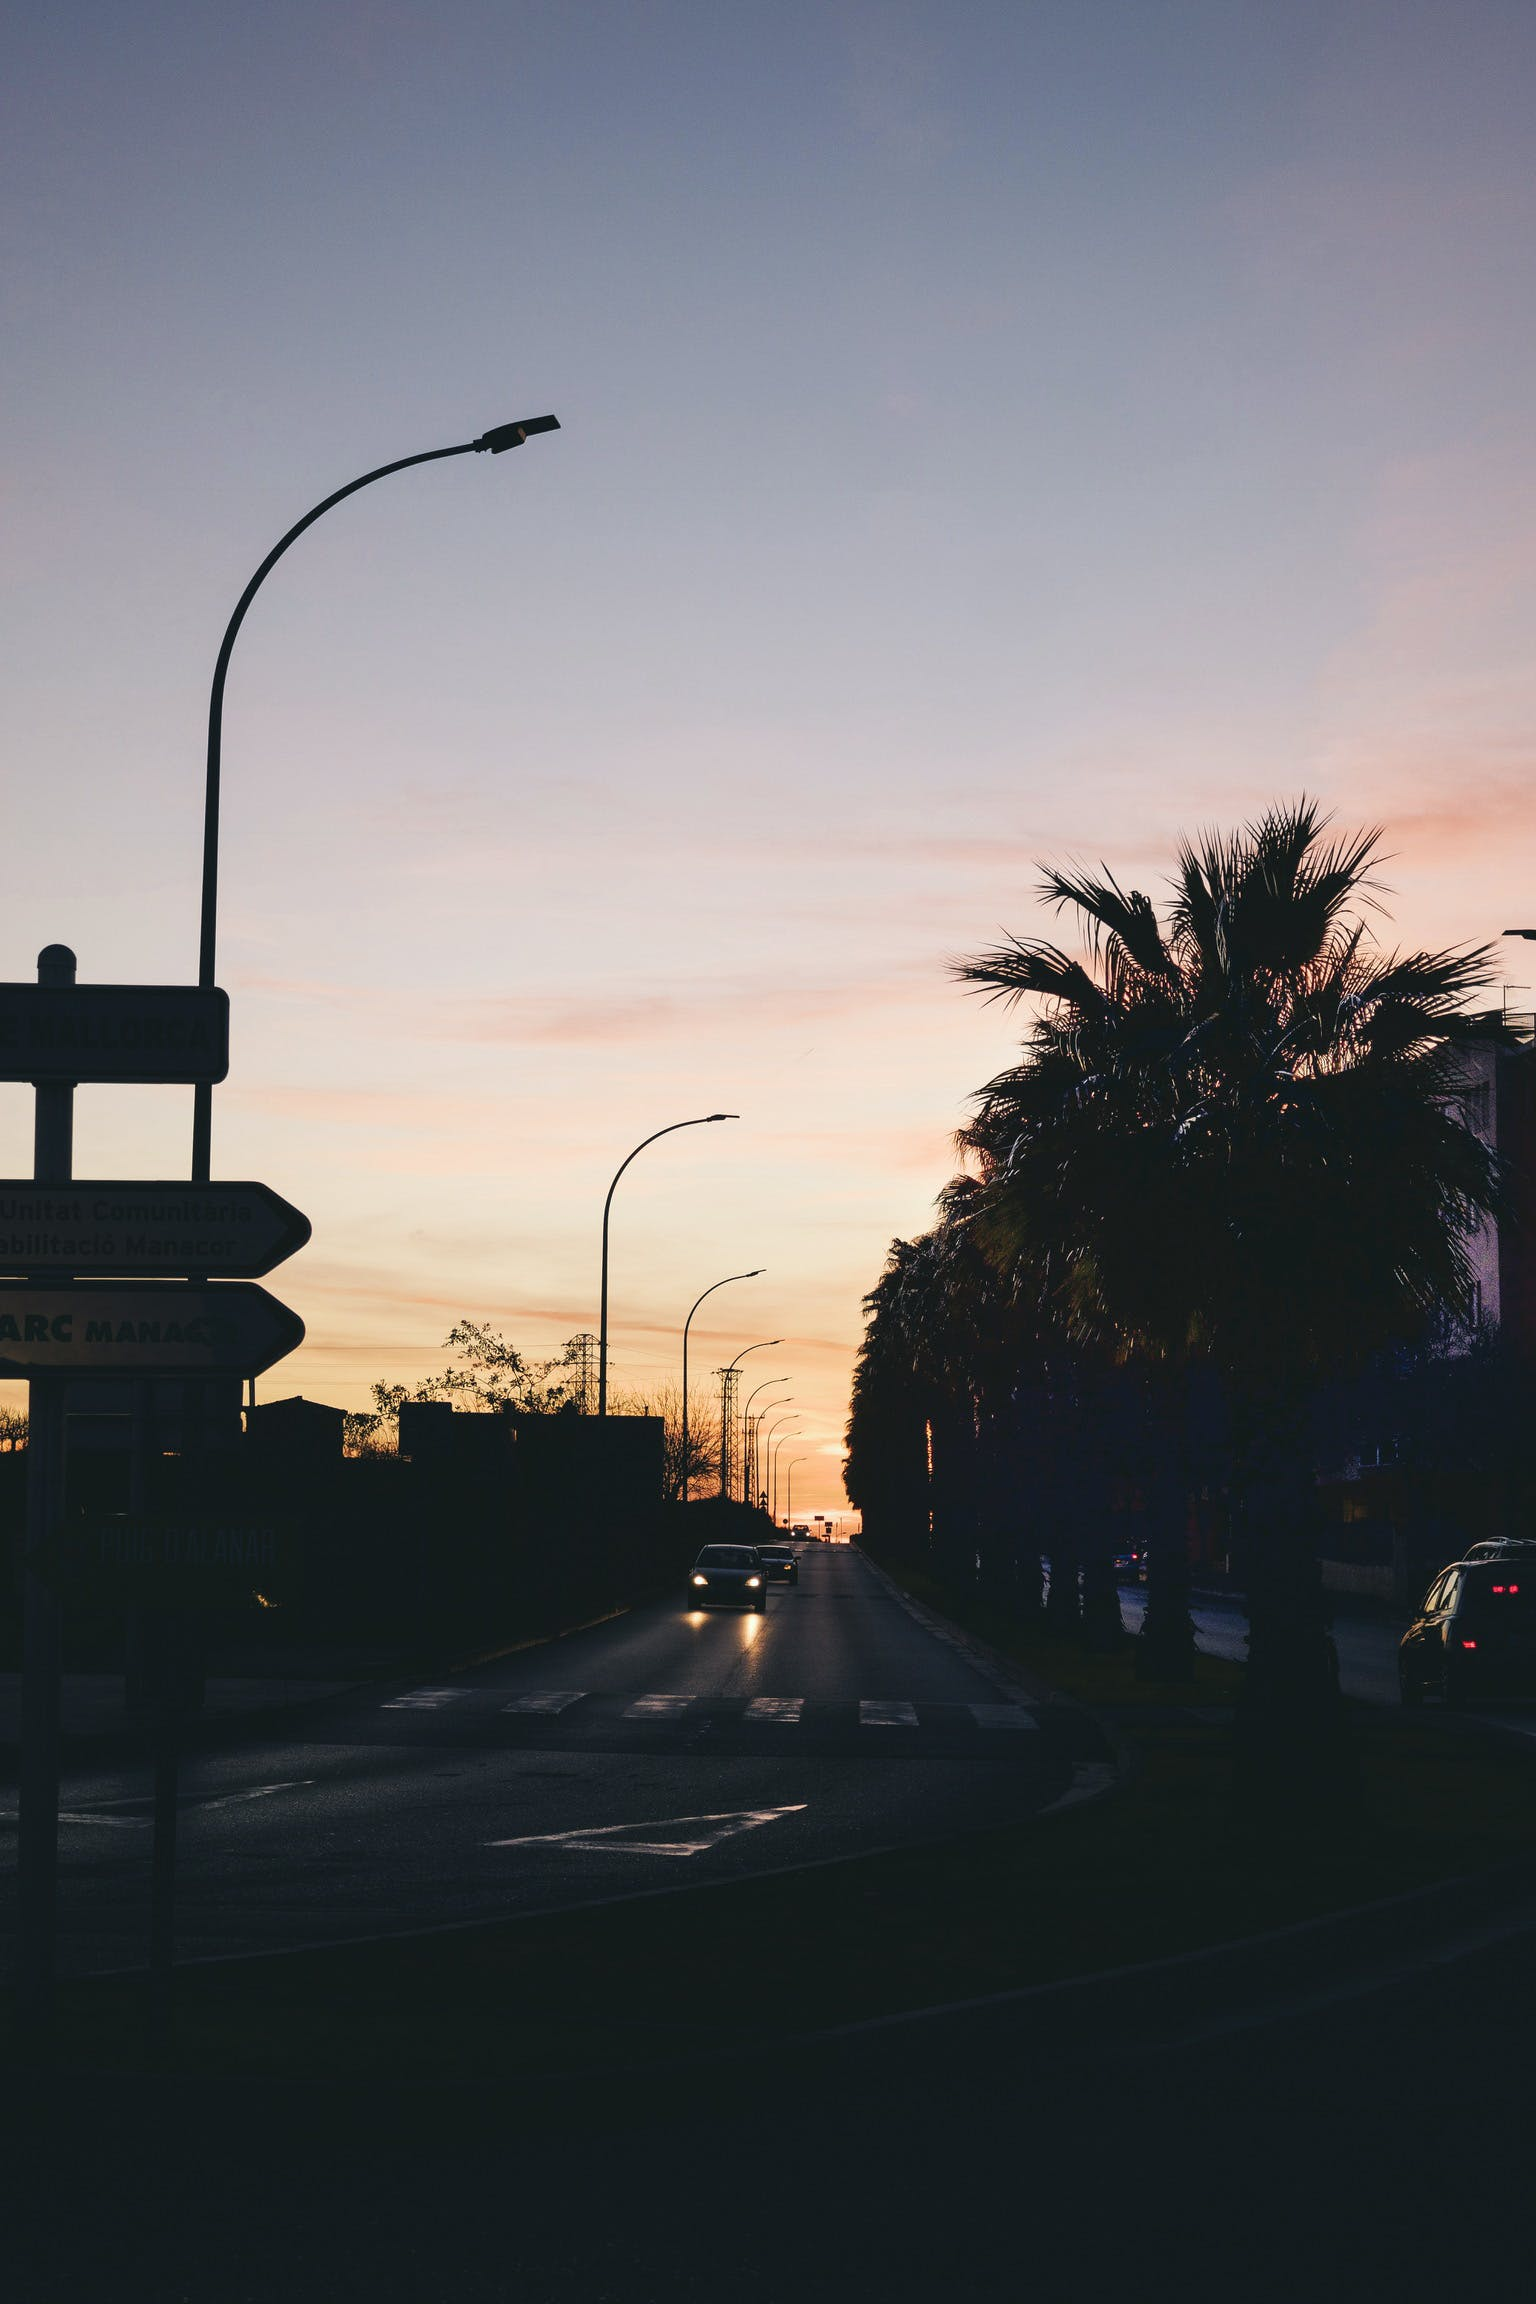 Silhouette Photo of Road Between Majesty Palm